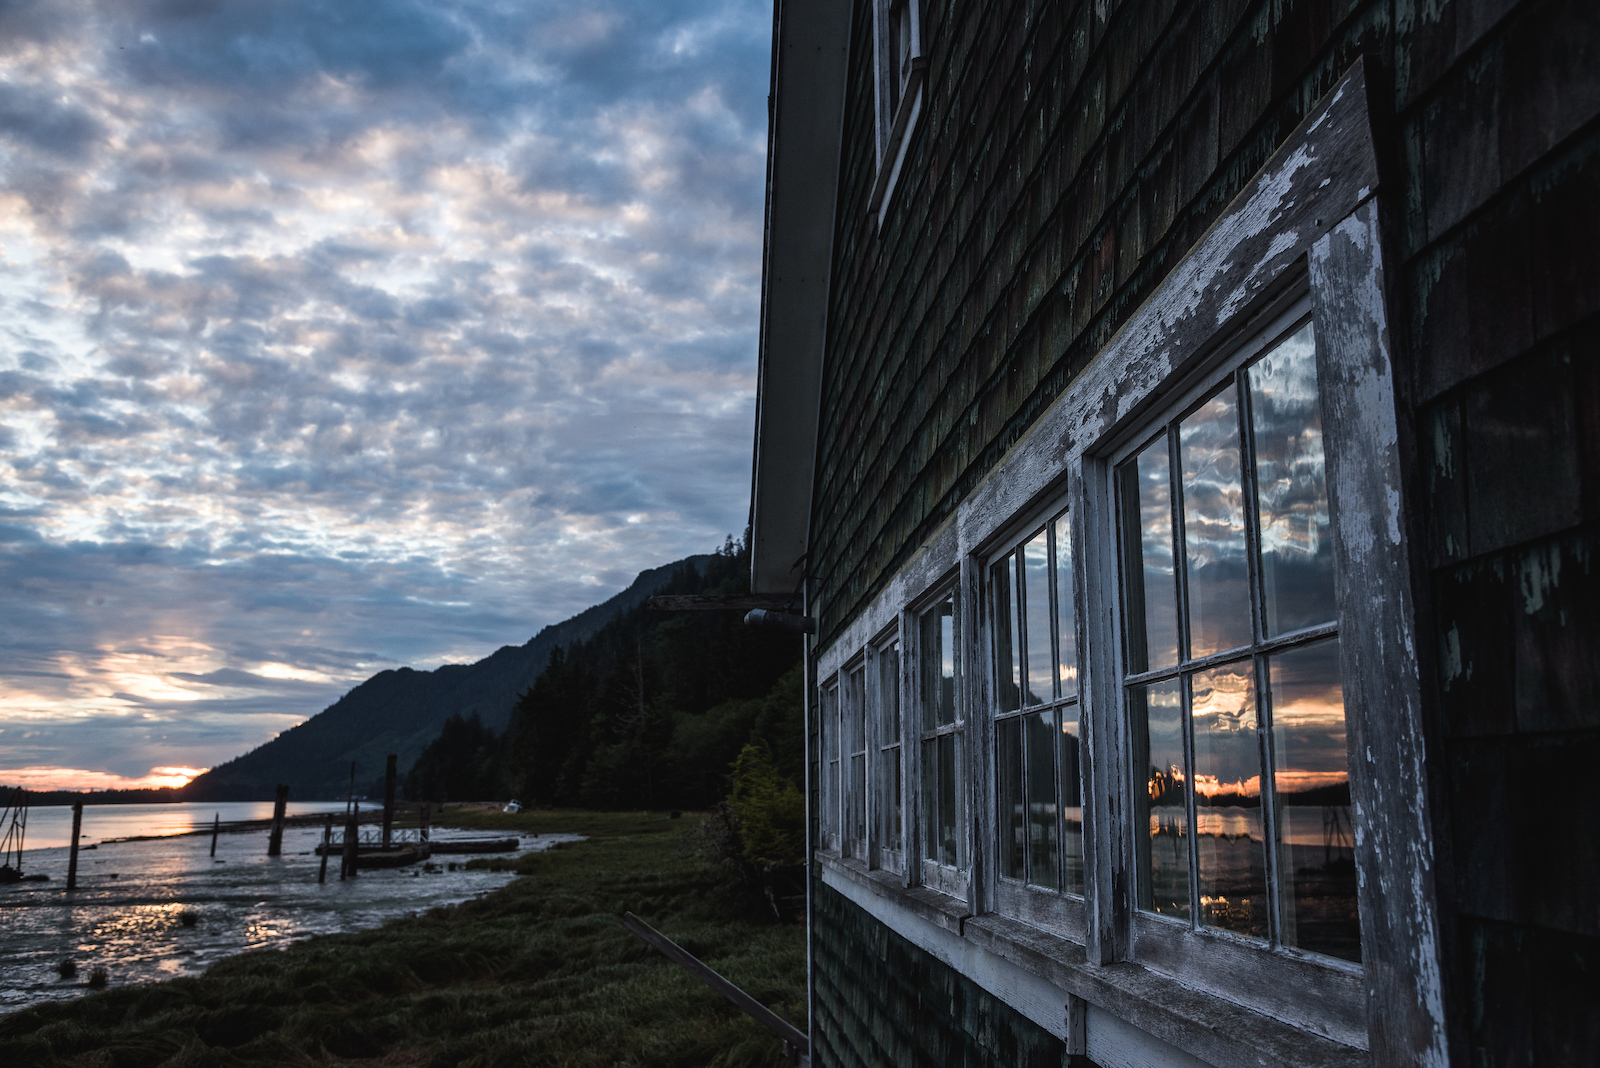 The rustic and historic side of the Cassiar Cannery is complemented by the amazing landscape and scenery definitely worth exploring a weekend away.